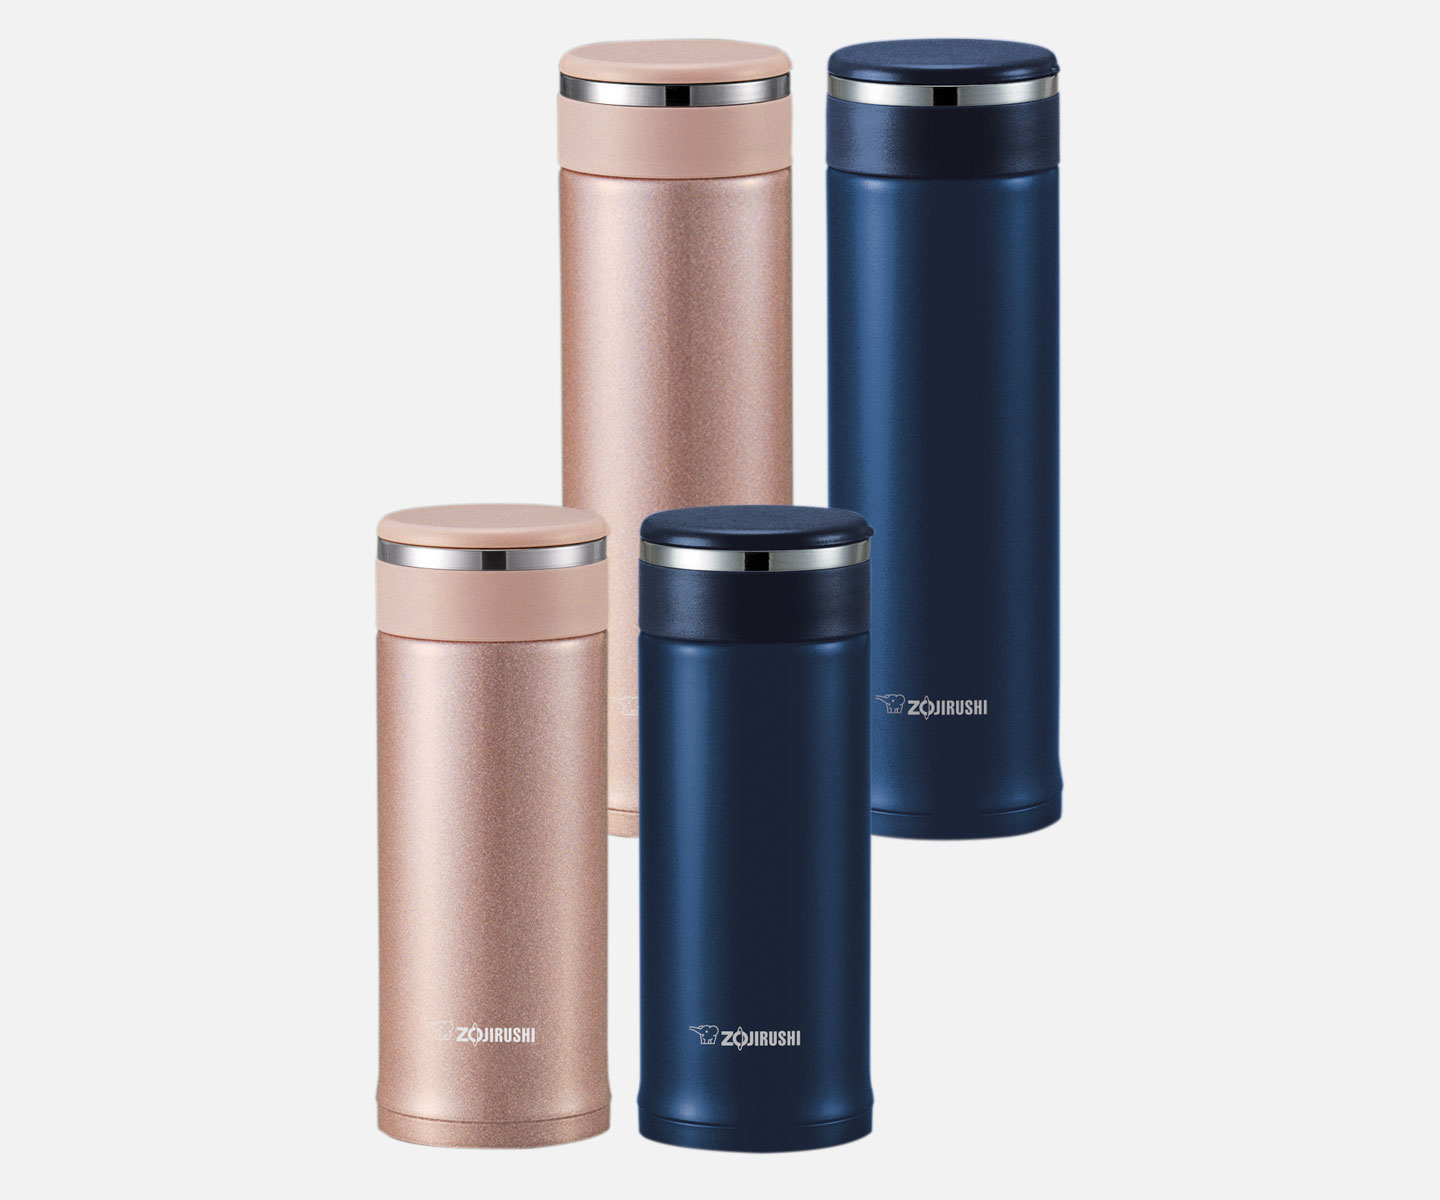 Stainless Mug With Tea Leaf Filter Sm Jte34 46 Zojirushi Com